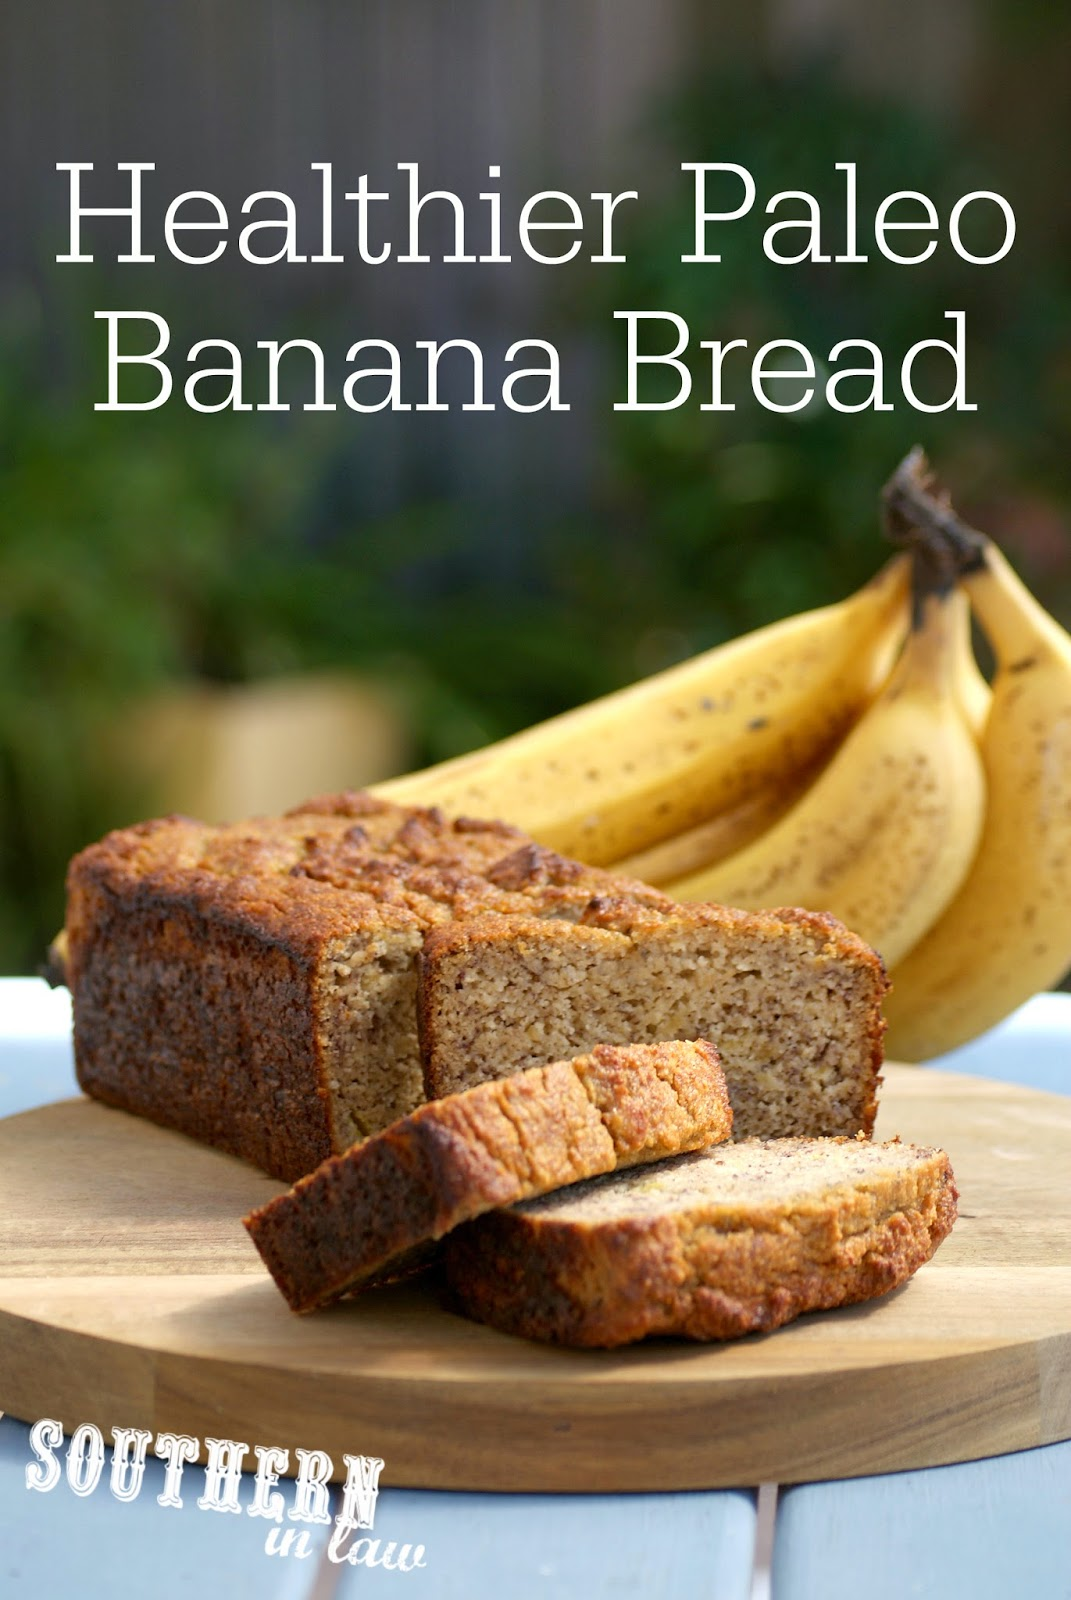 Southern in law recipe the best healthy paleo banana bread the best healthy paleo banana bread recipe low fat gluten free low sugar forumfinder Image collections